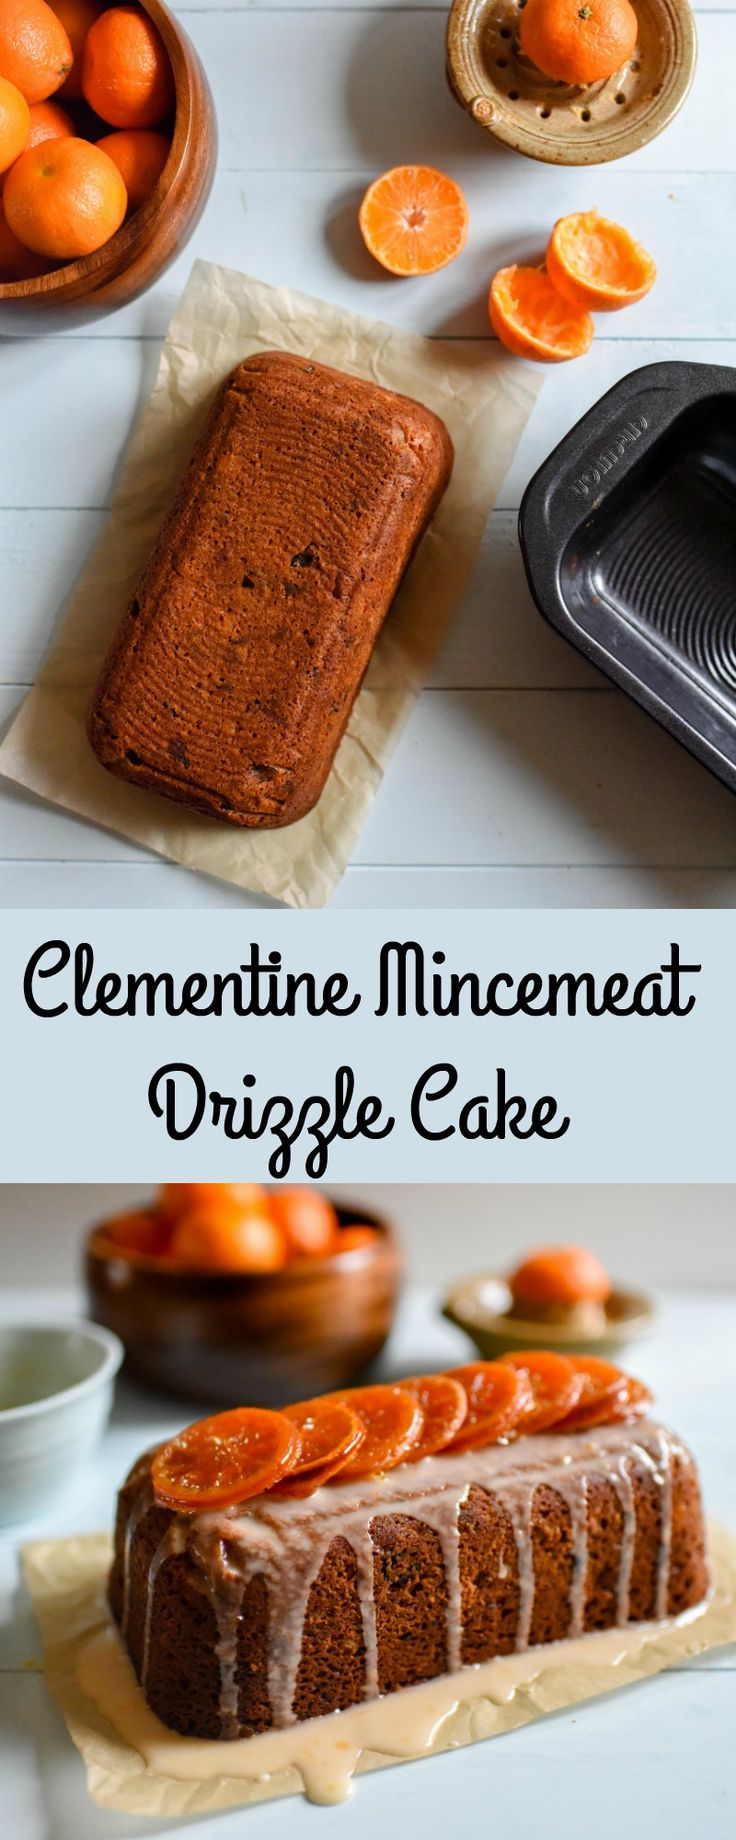 This Clementine & Mincemeat Drizzle Cake is a great recipe for using up leftover fruit or mincemeat. This is a great celebration cake too.